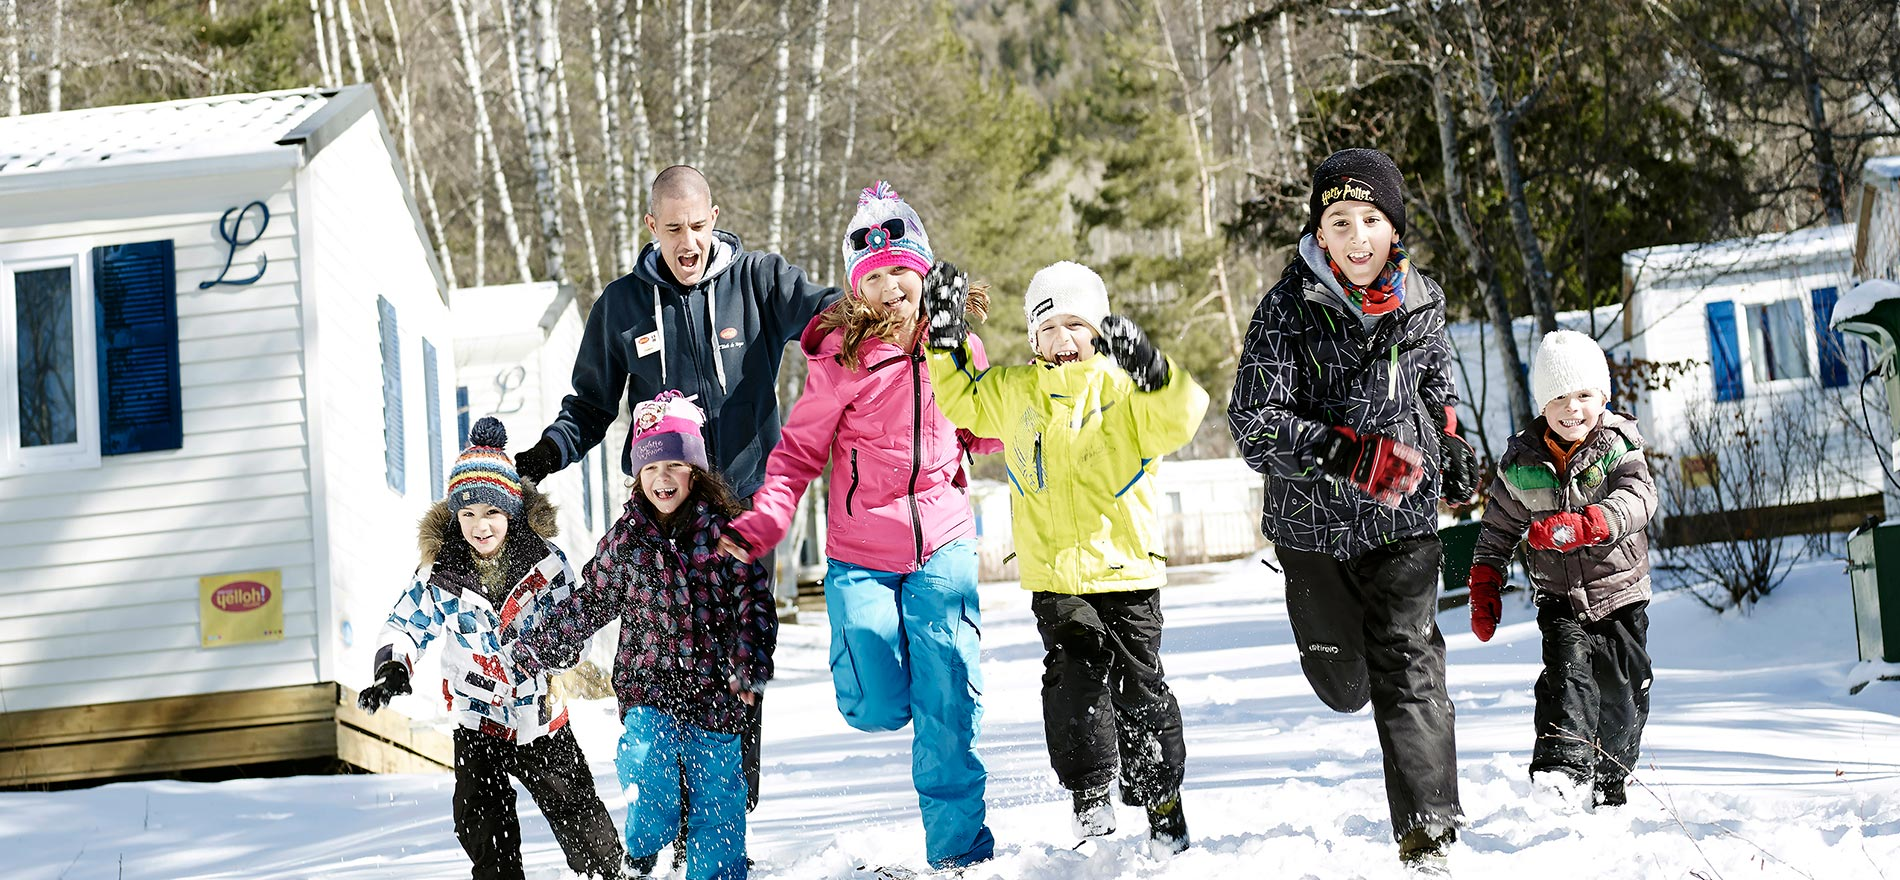 Camping Letoile Des Neiges Yelloh Village In Montclar